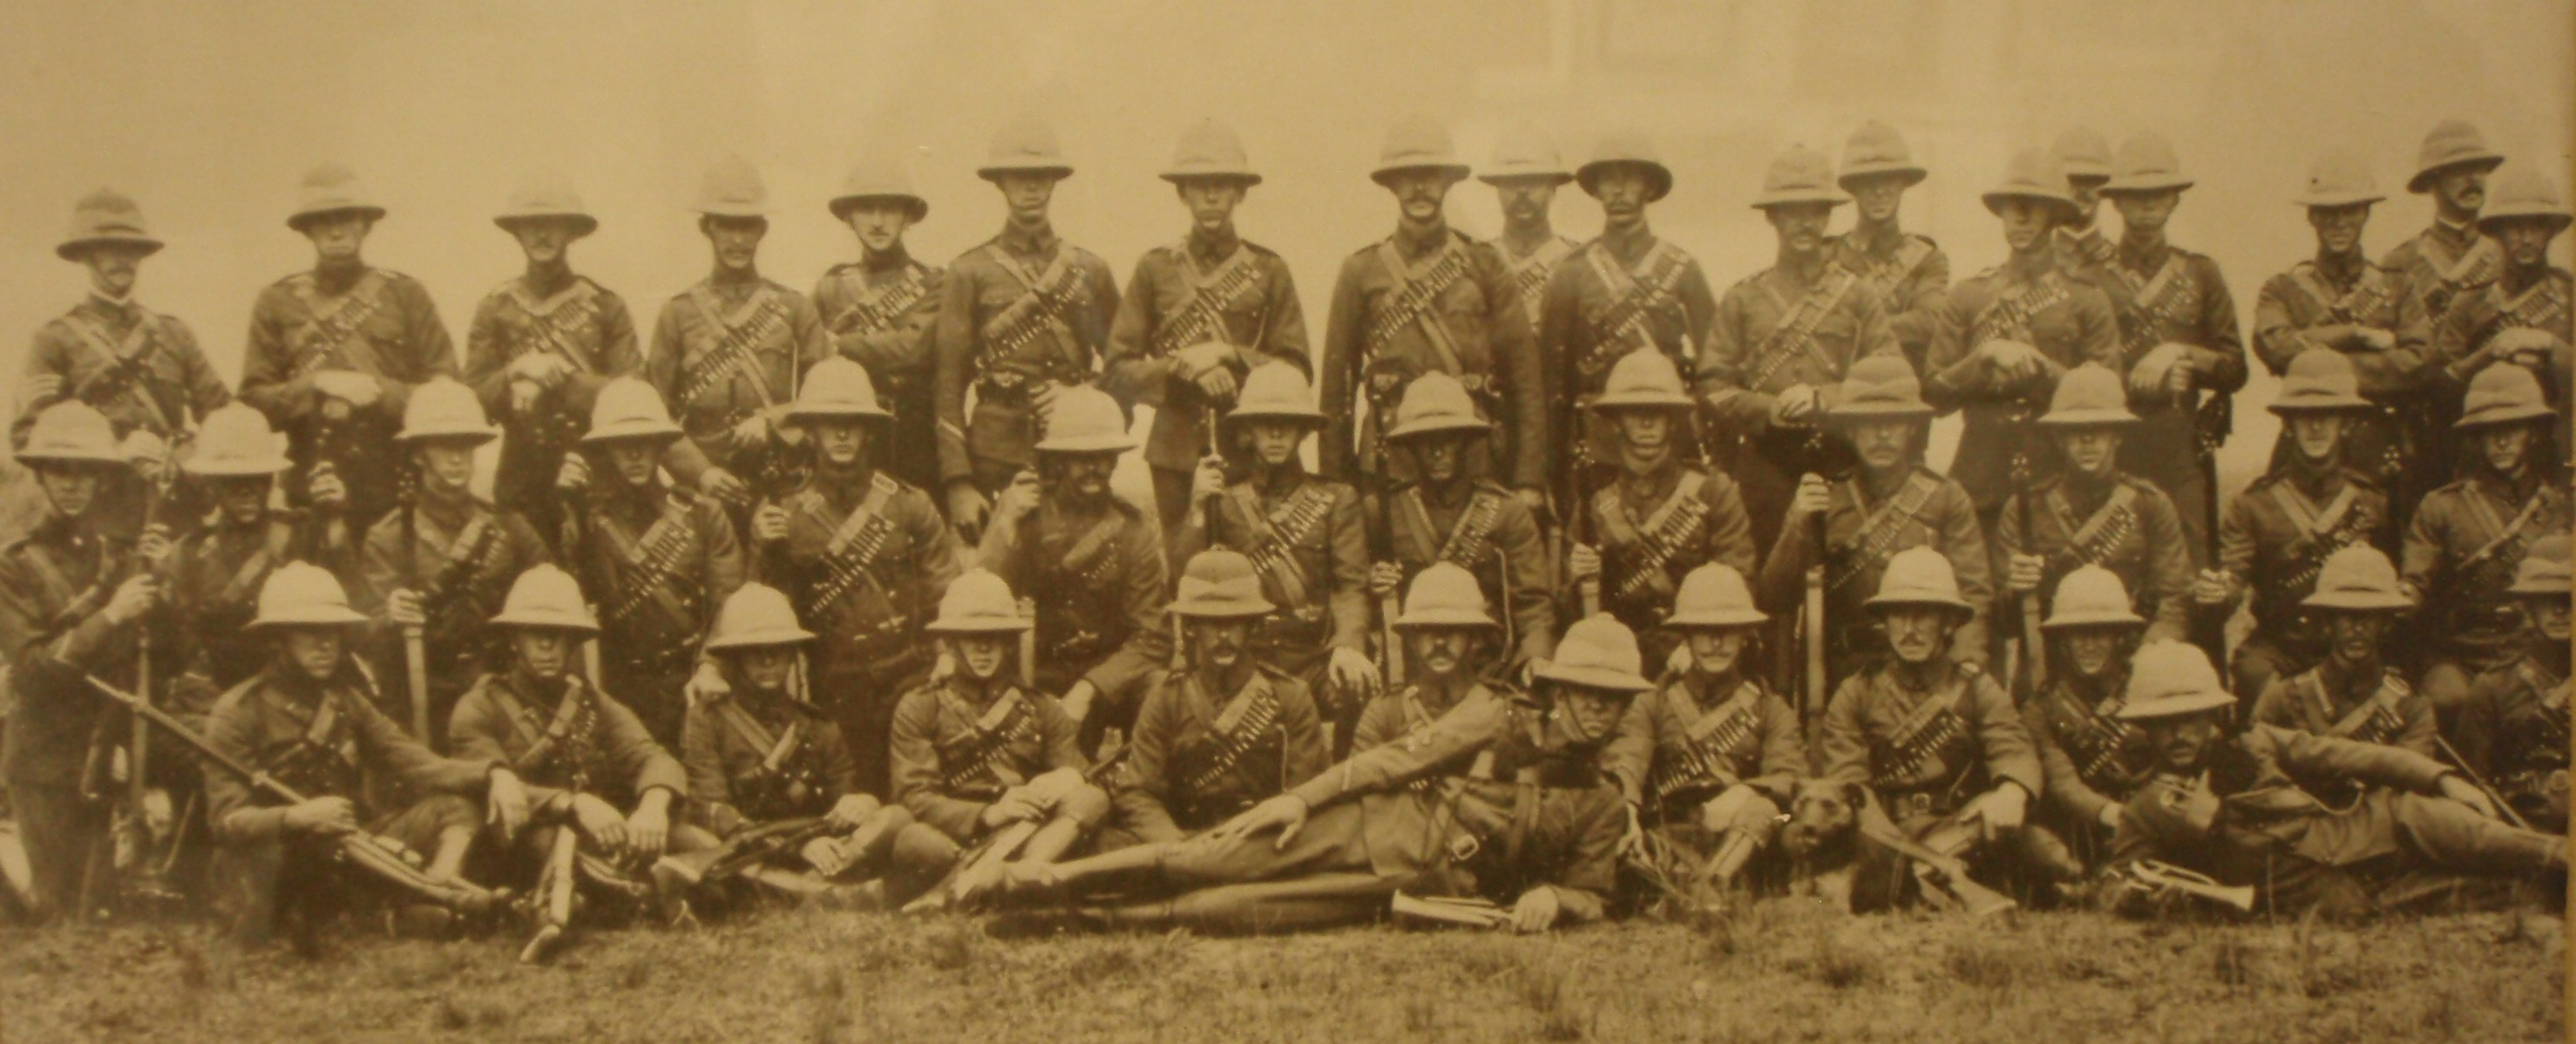 an overview of the british government in the boer war Battle of dundee (glencoe), october 20, 1899 boer generals and officers xxx   the boers under kruger revolted and secured limited self-government  boer  commandos fought a prolonged guerilla war against the british,.